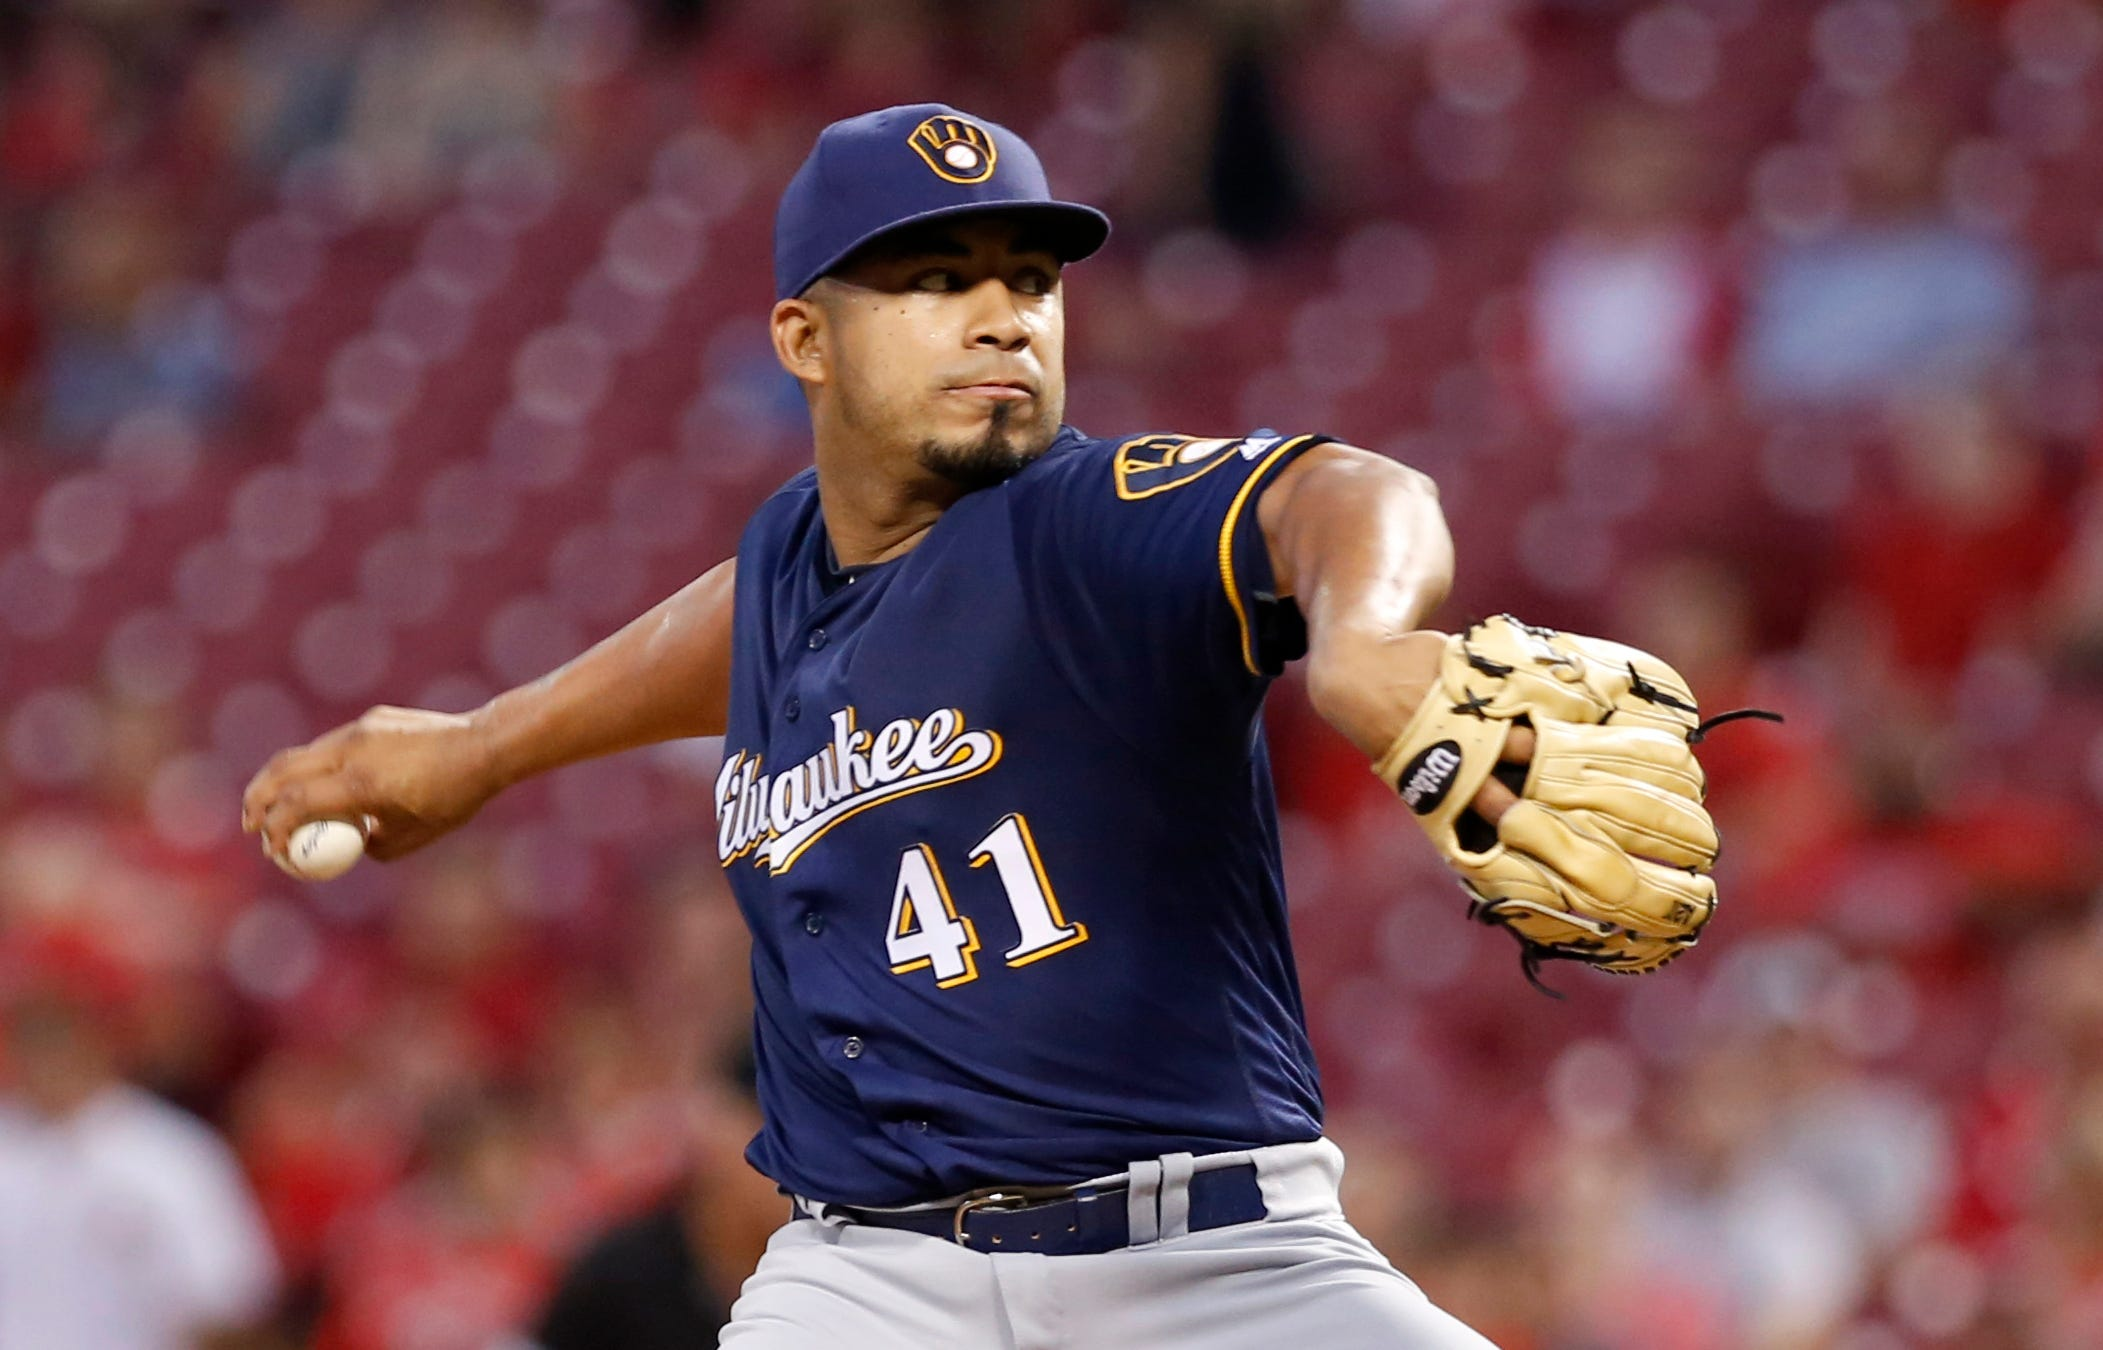 Guerra takes the mound against Athletics